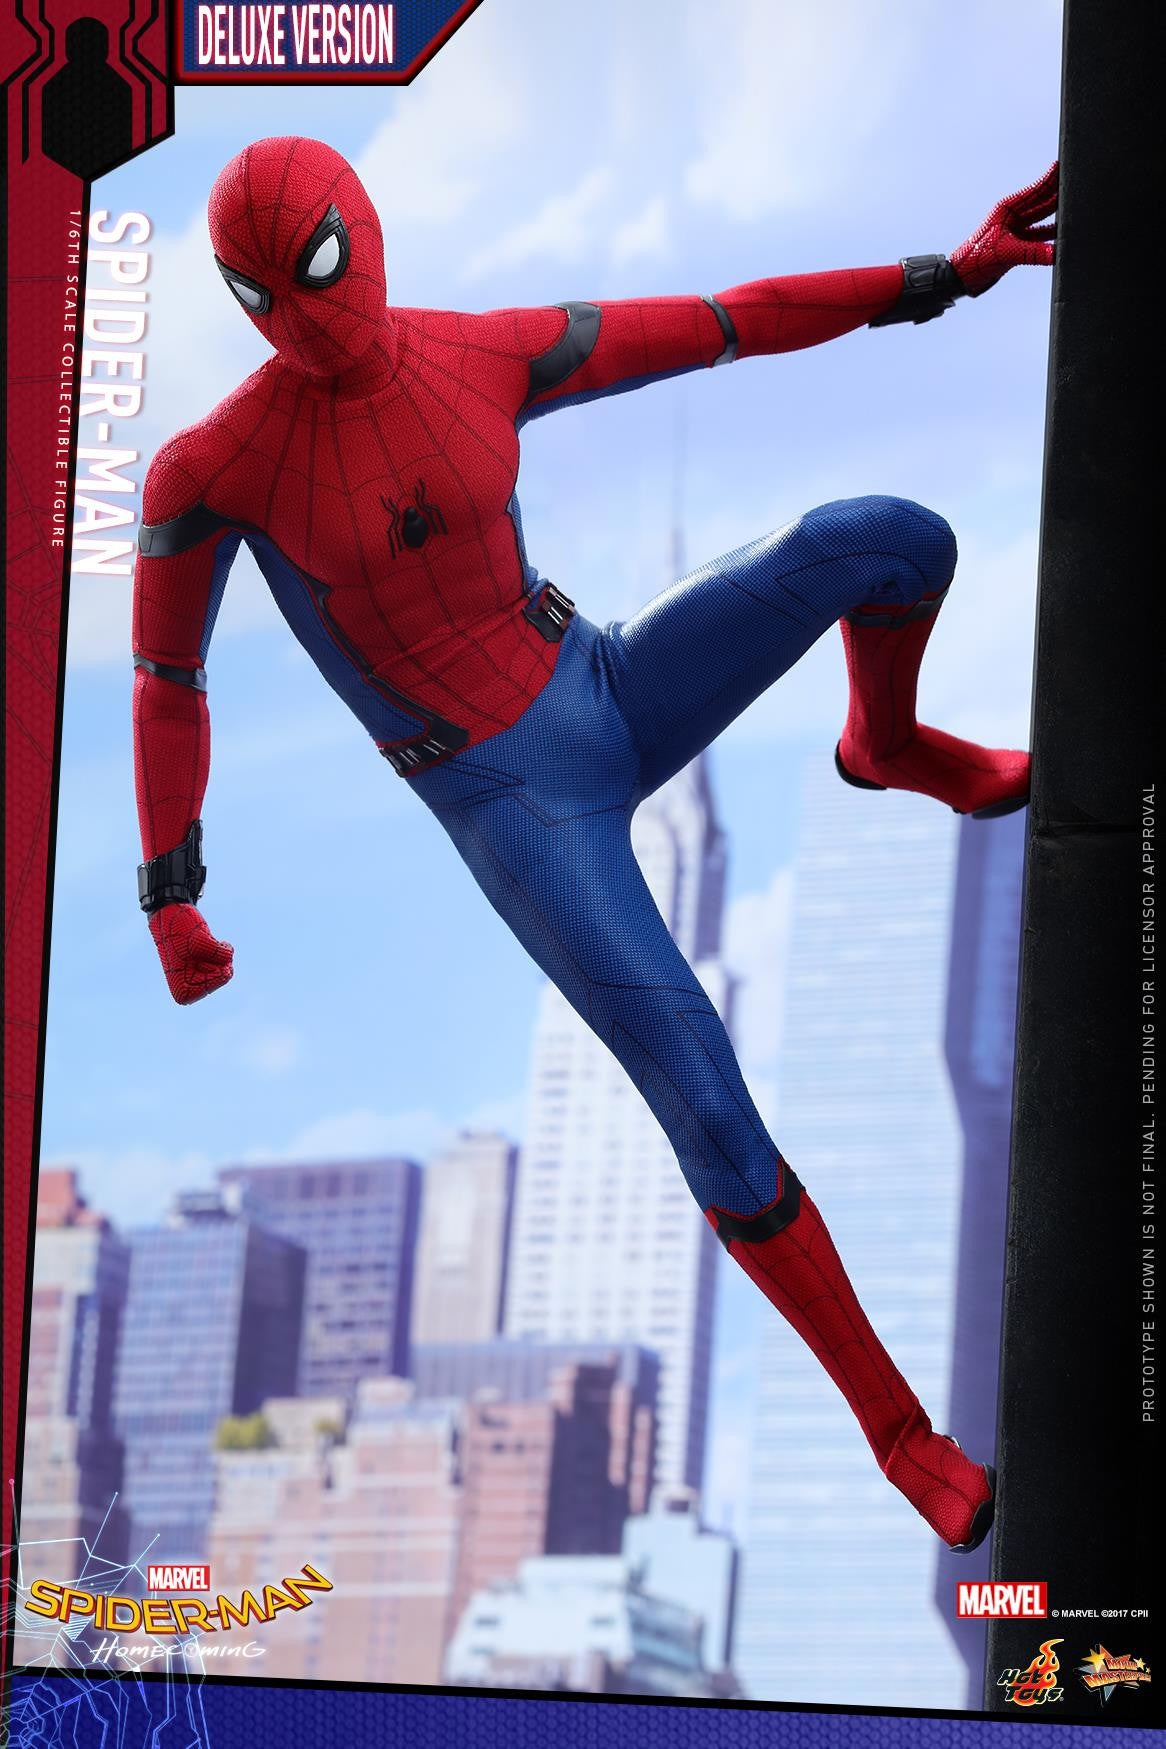 Hot Toys - MMS426 - Spider-Man: Homecoming - Spider-Man (Deluxe Version)